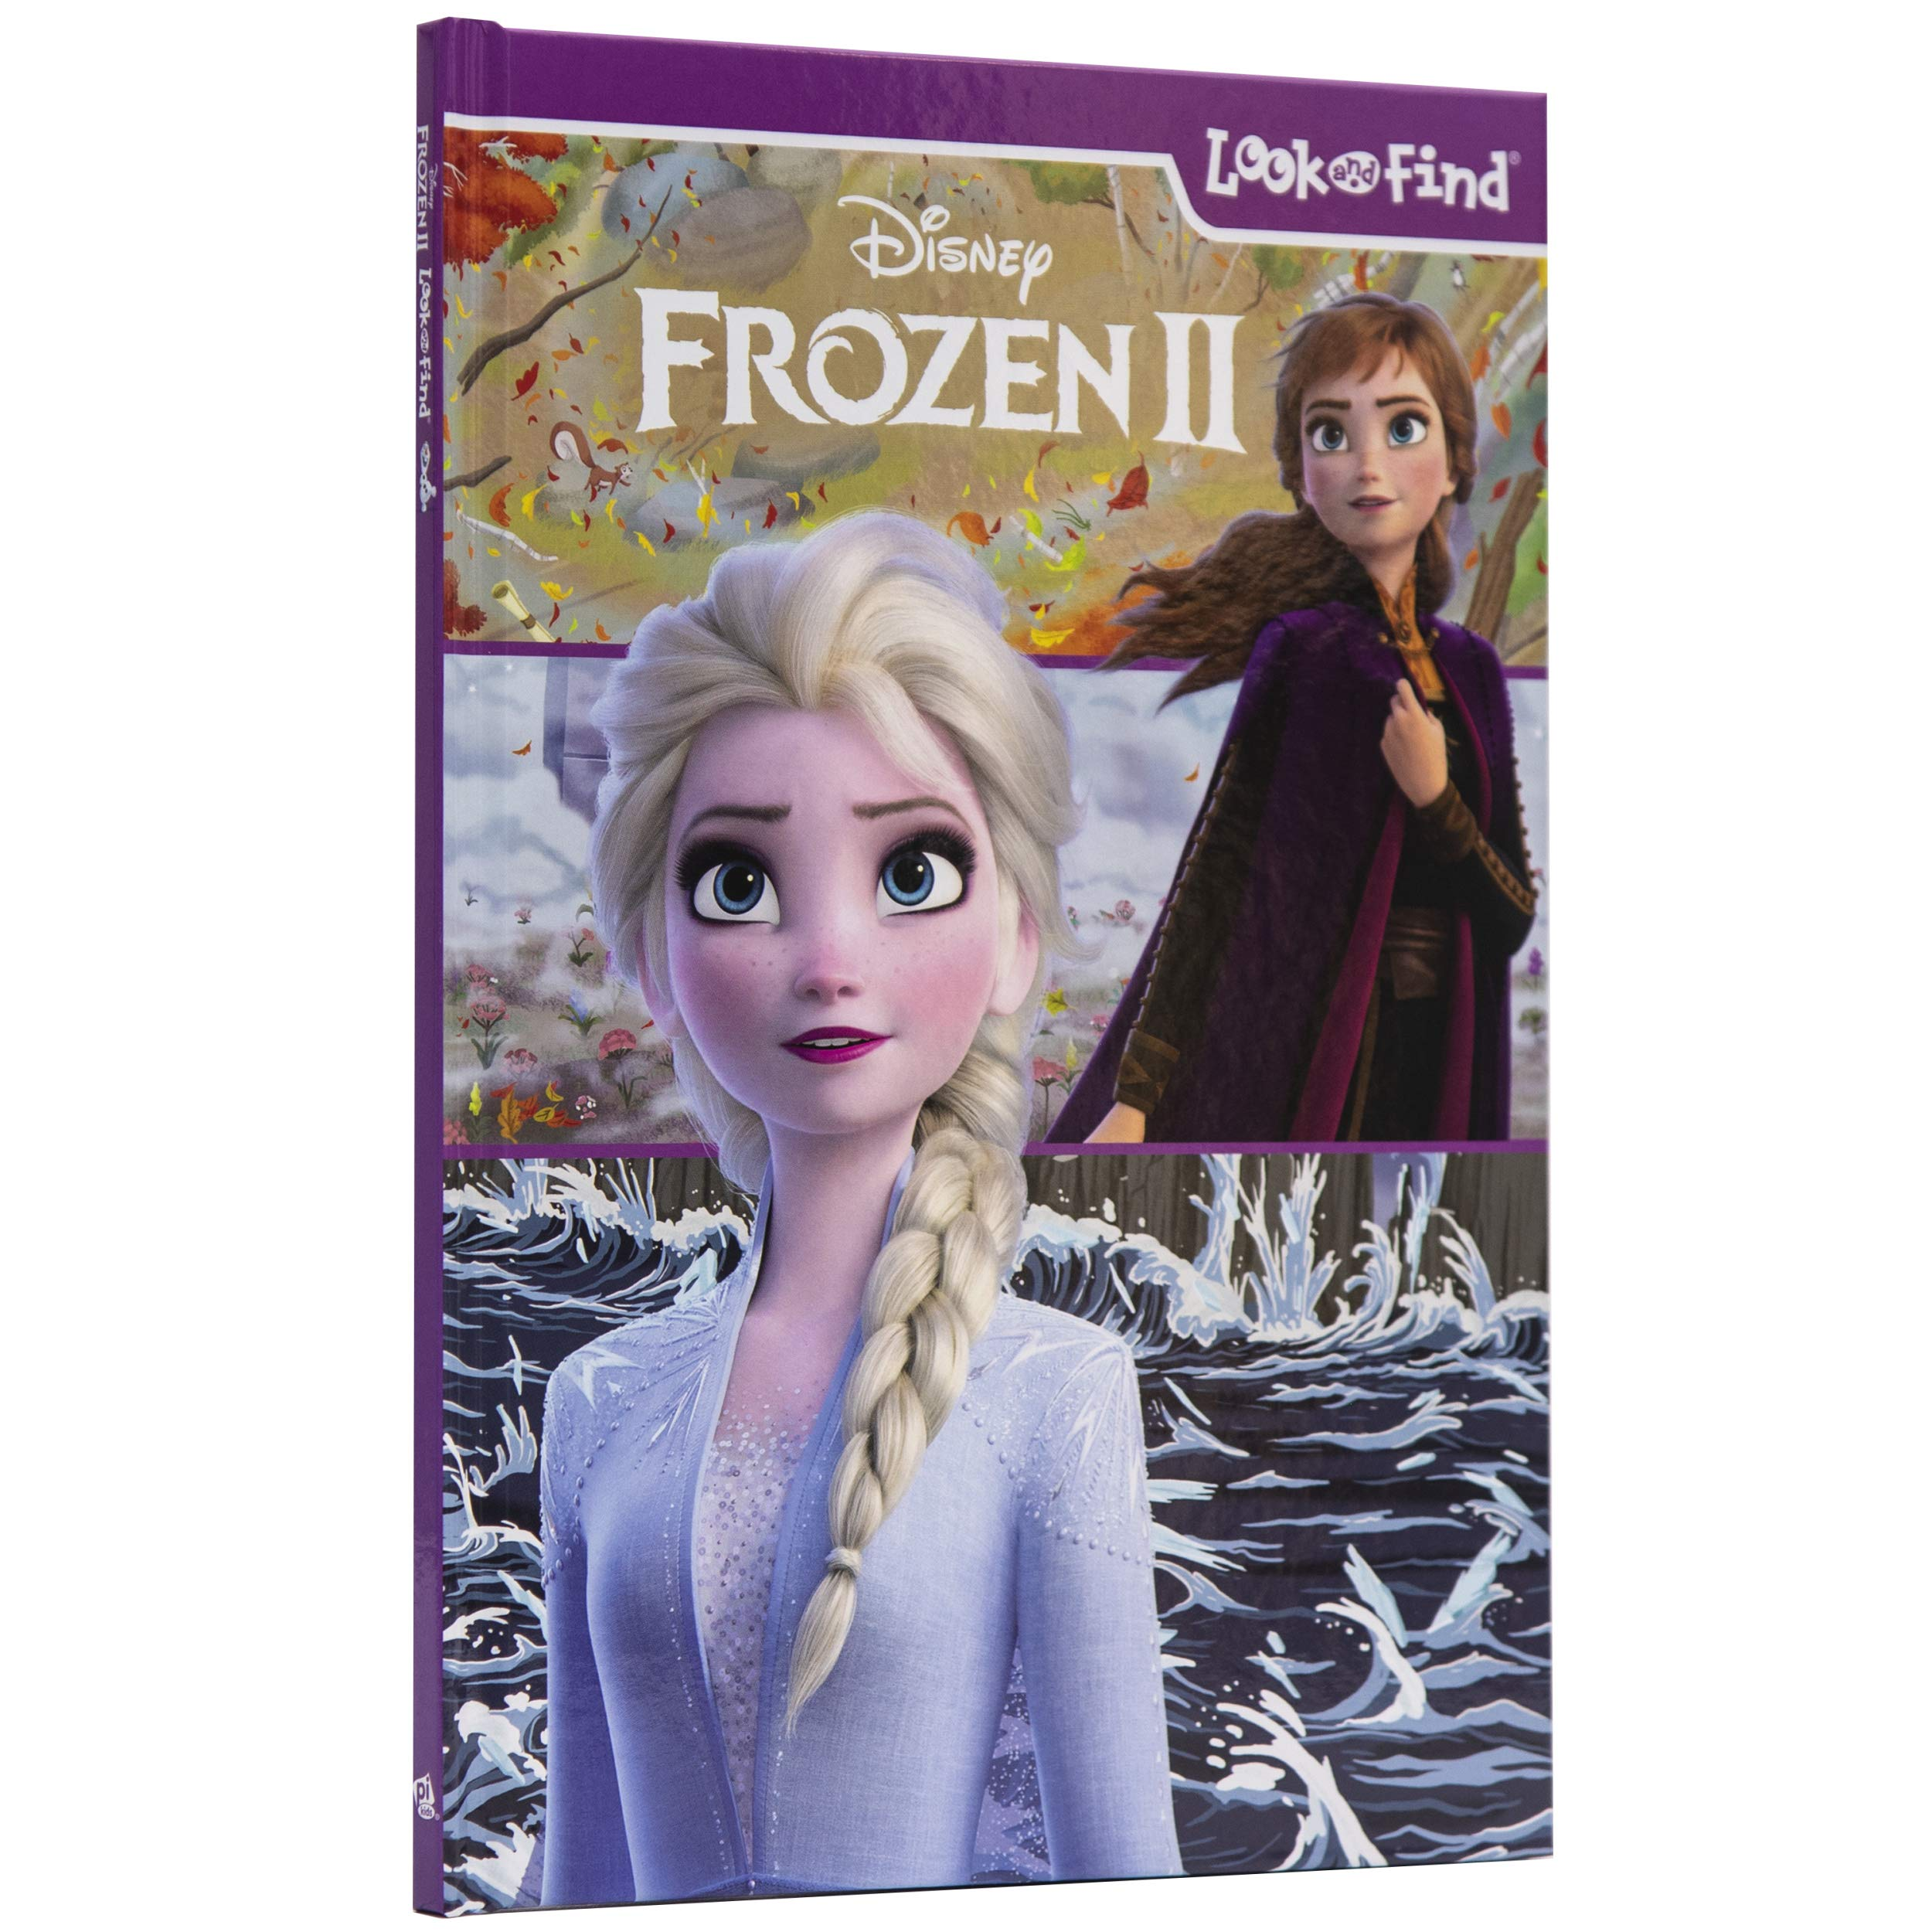 Set of 3 Disney Find It Books Featuring Disney Princess Disney Look and Find Books for Kids Disney Look and Find Books for Kids; Find It Books; Eye Spy Books Frozen and More